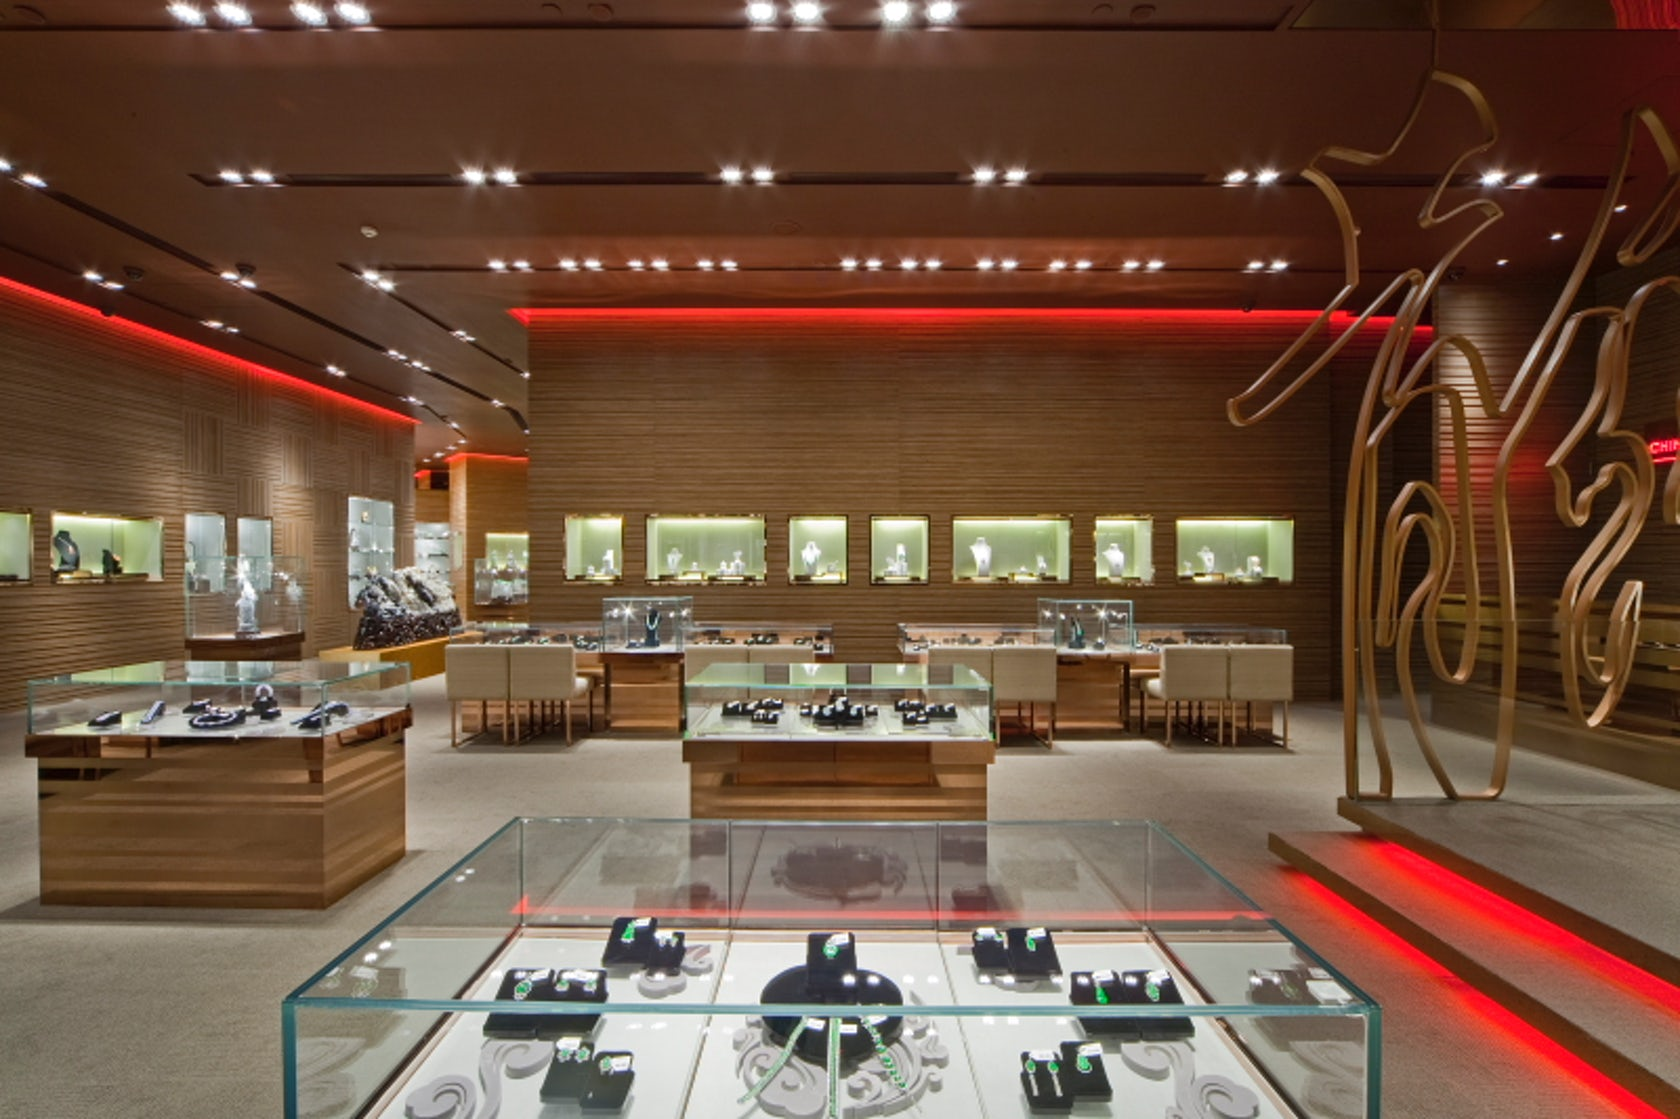 Chinese arts crafts hangzhou store architizer for Art and craft stores nyc